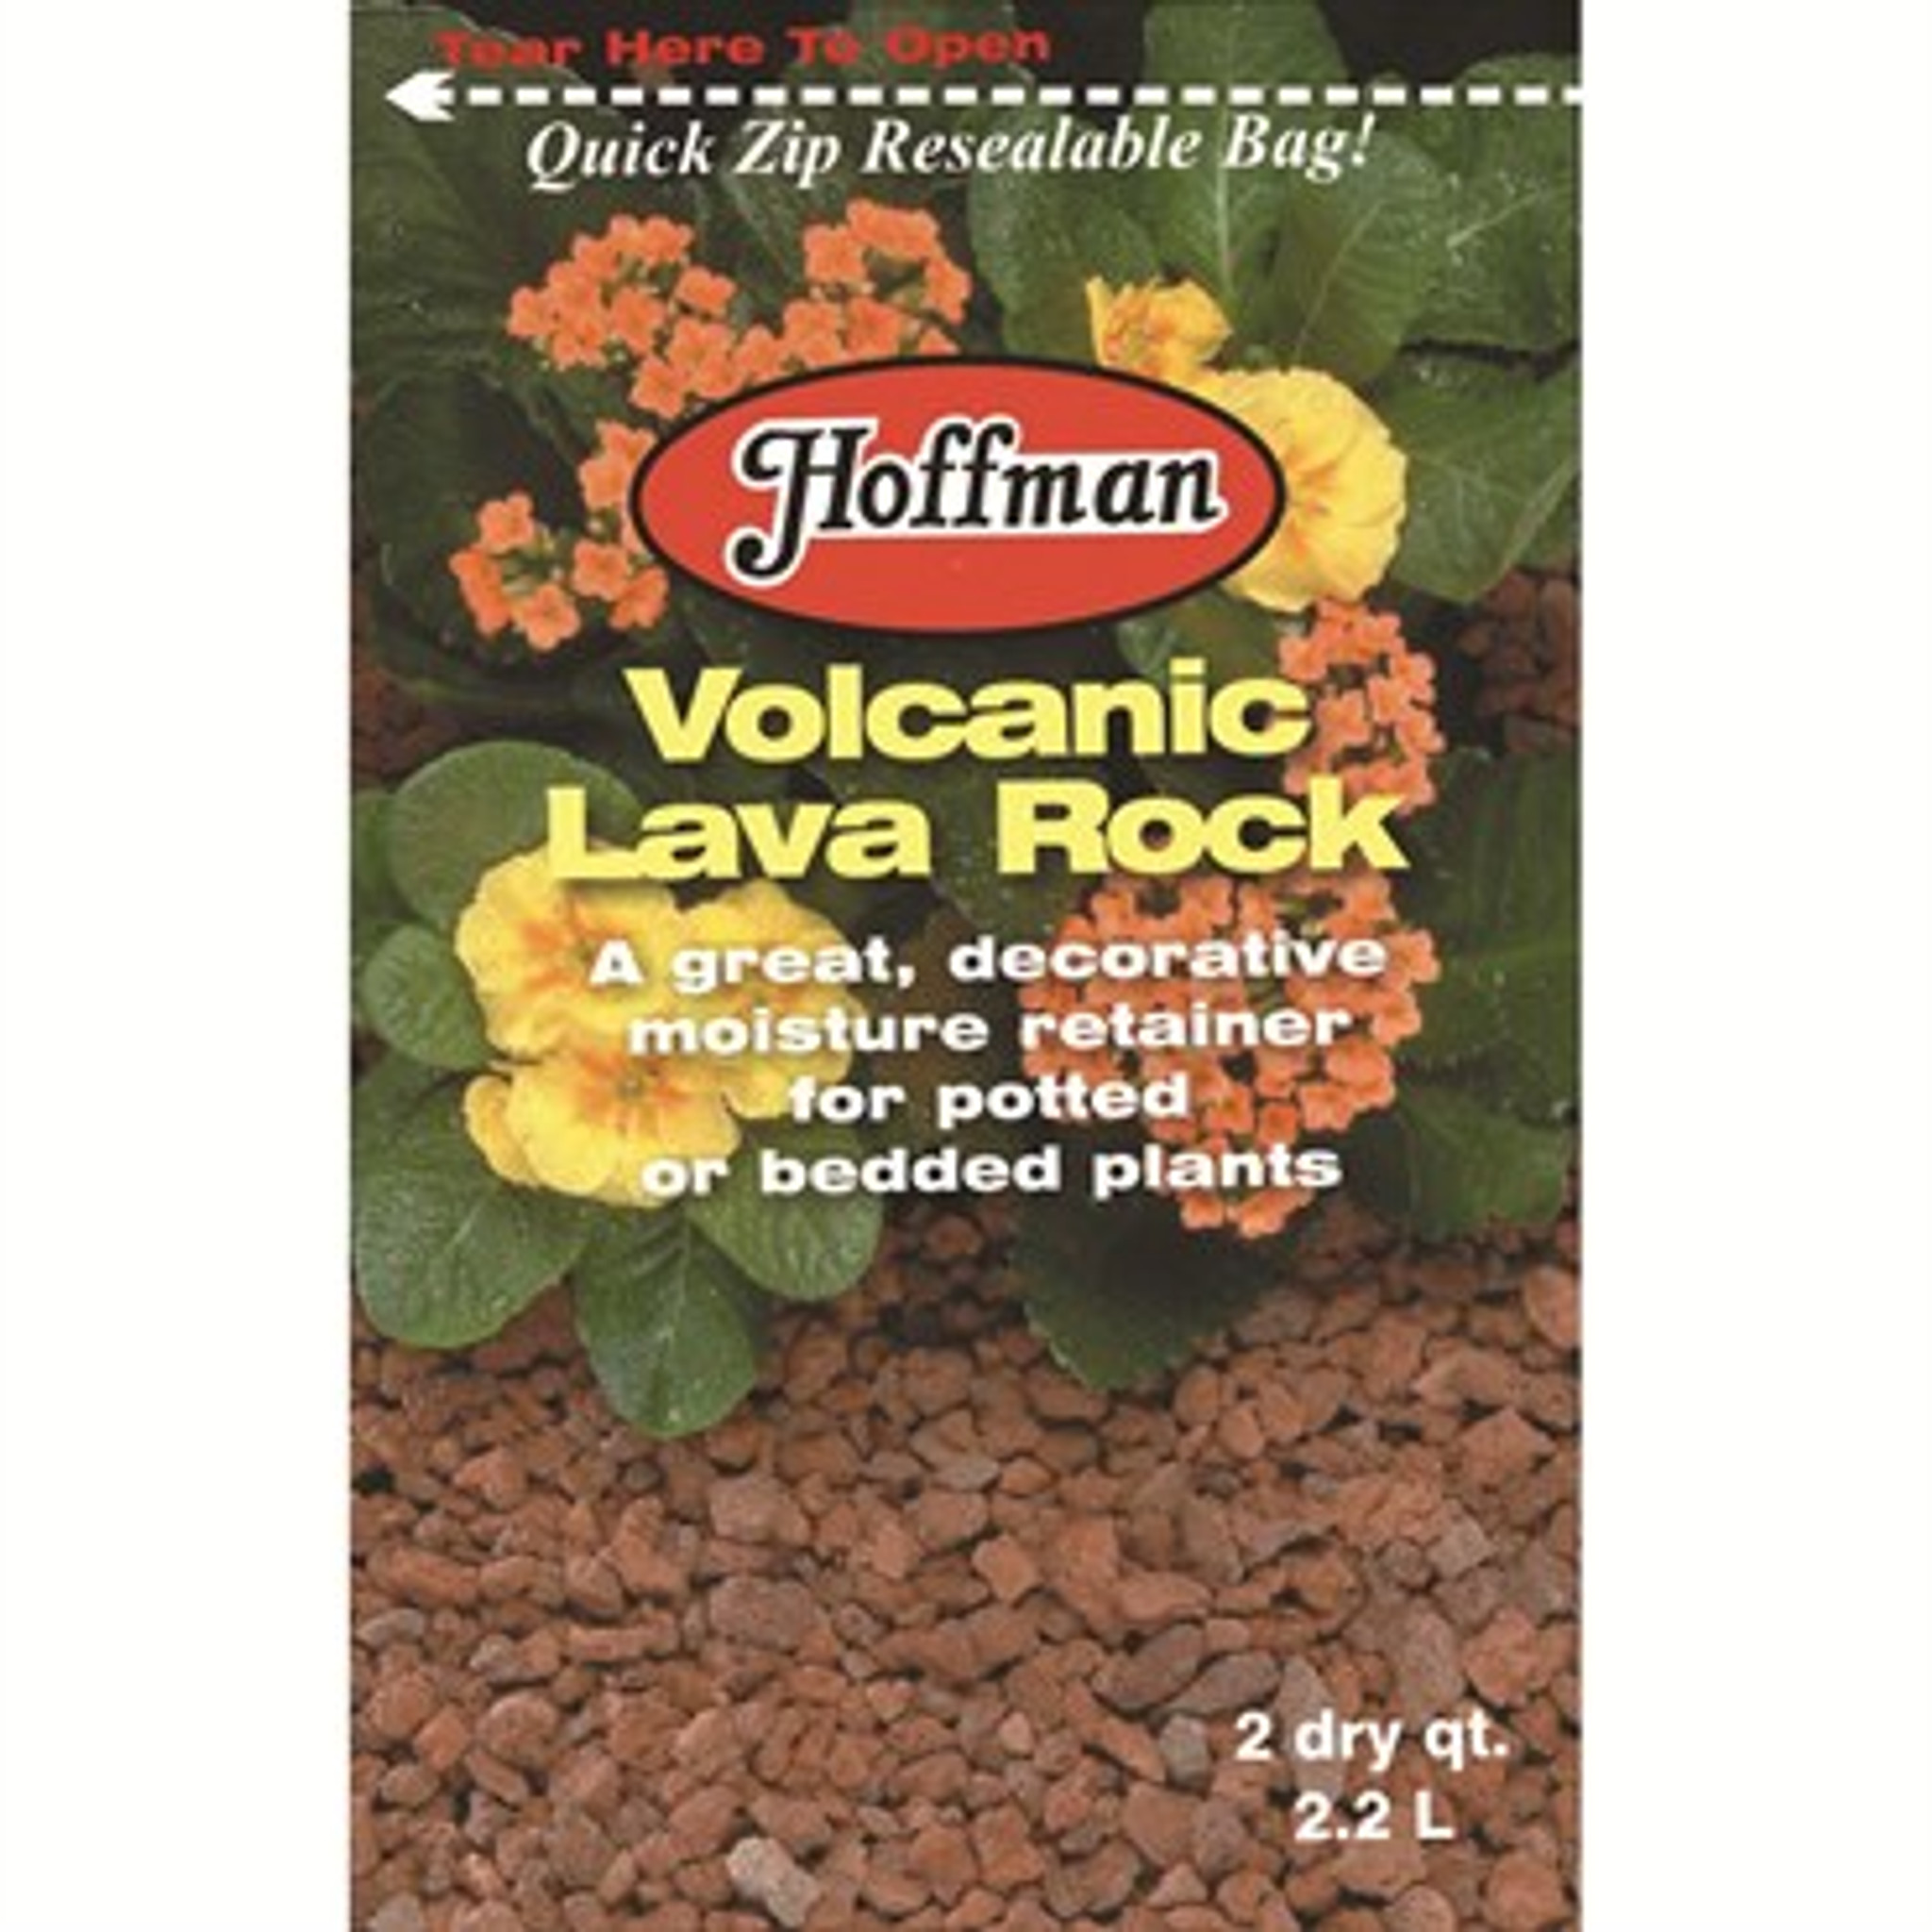 Hoffman Volcanic Lava Rock 2qt Urban Garden Center